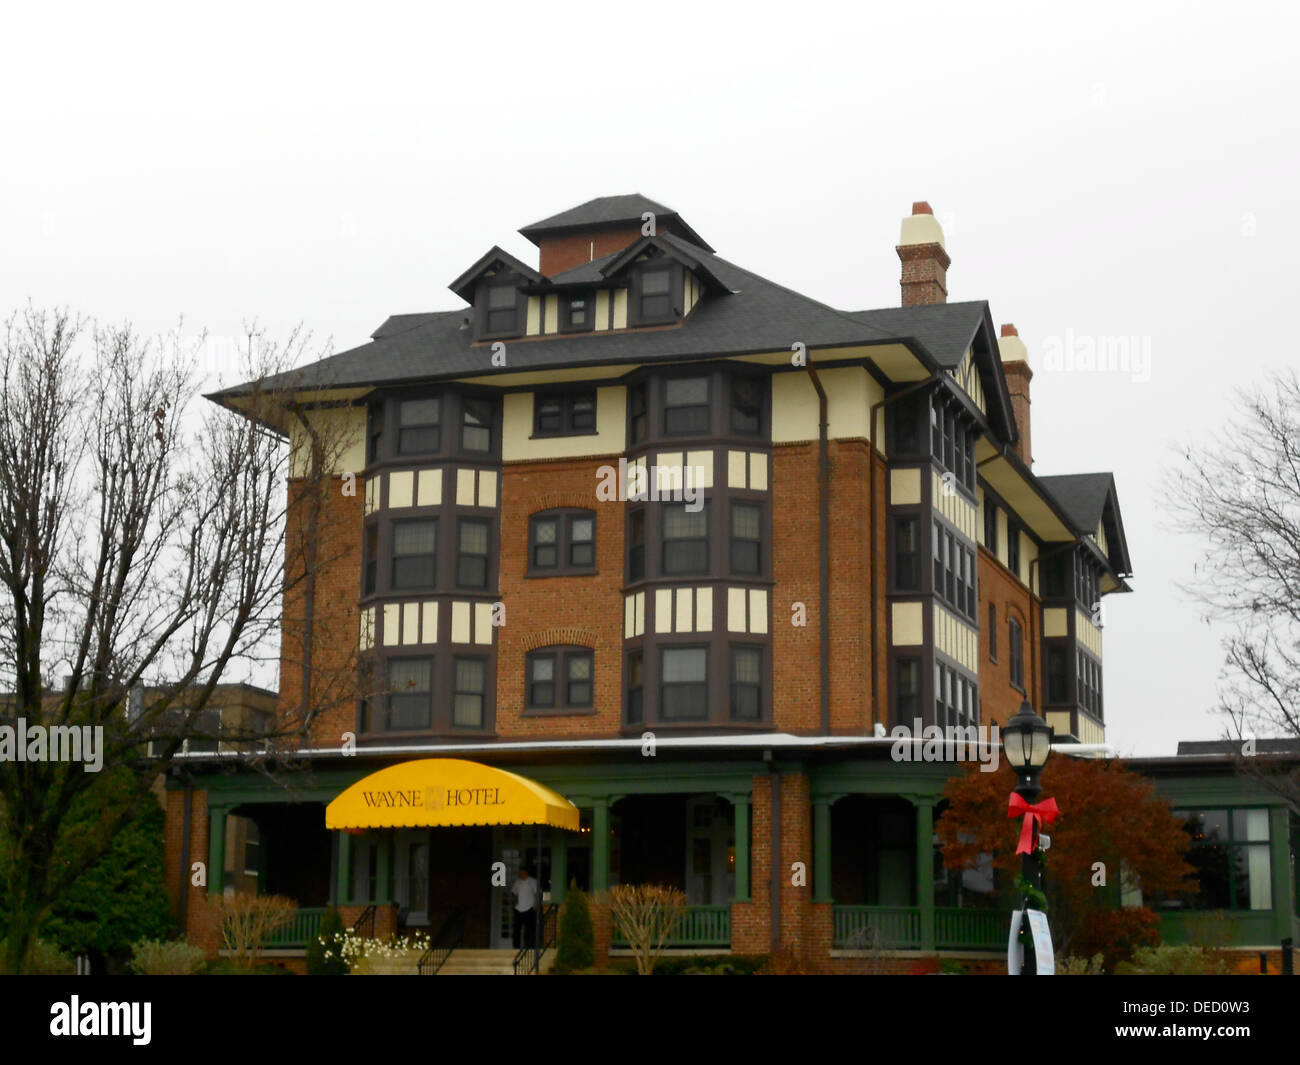 Wayne Hotel on the NRHP since November 5, 1987. At 139 East Lancaster Avenue, Wayne, Radnor Township, Delaware County, Pennsylvania. Also in the NRHP Downtown Wayne Historic District. - Stock Image